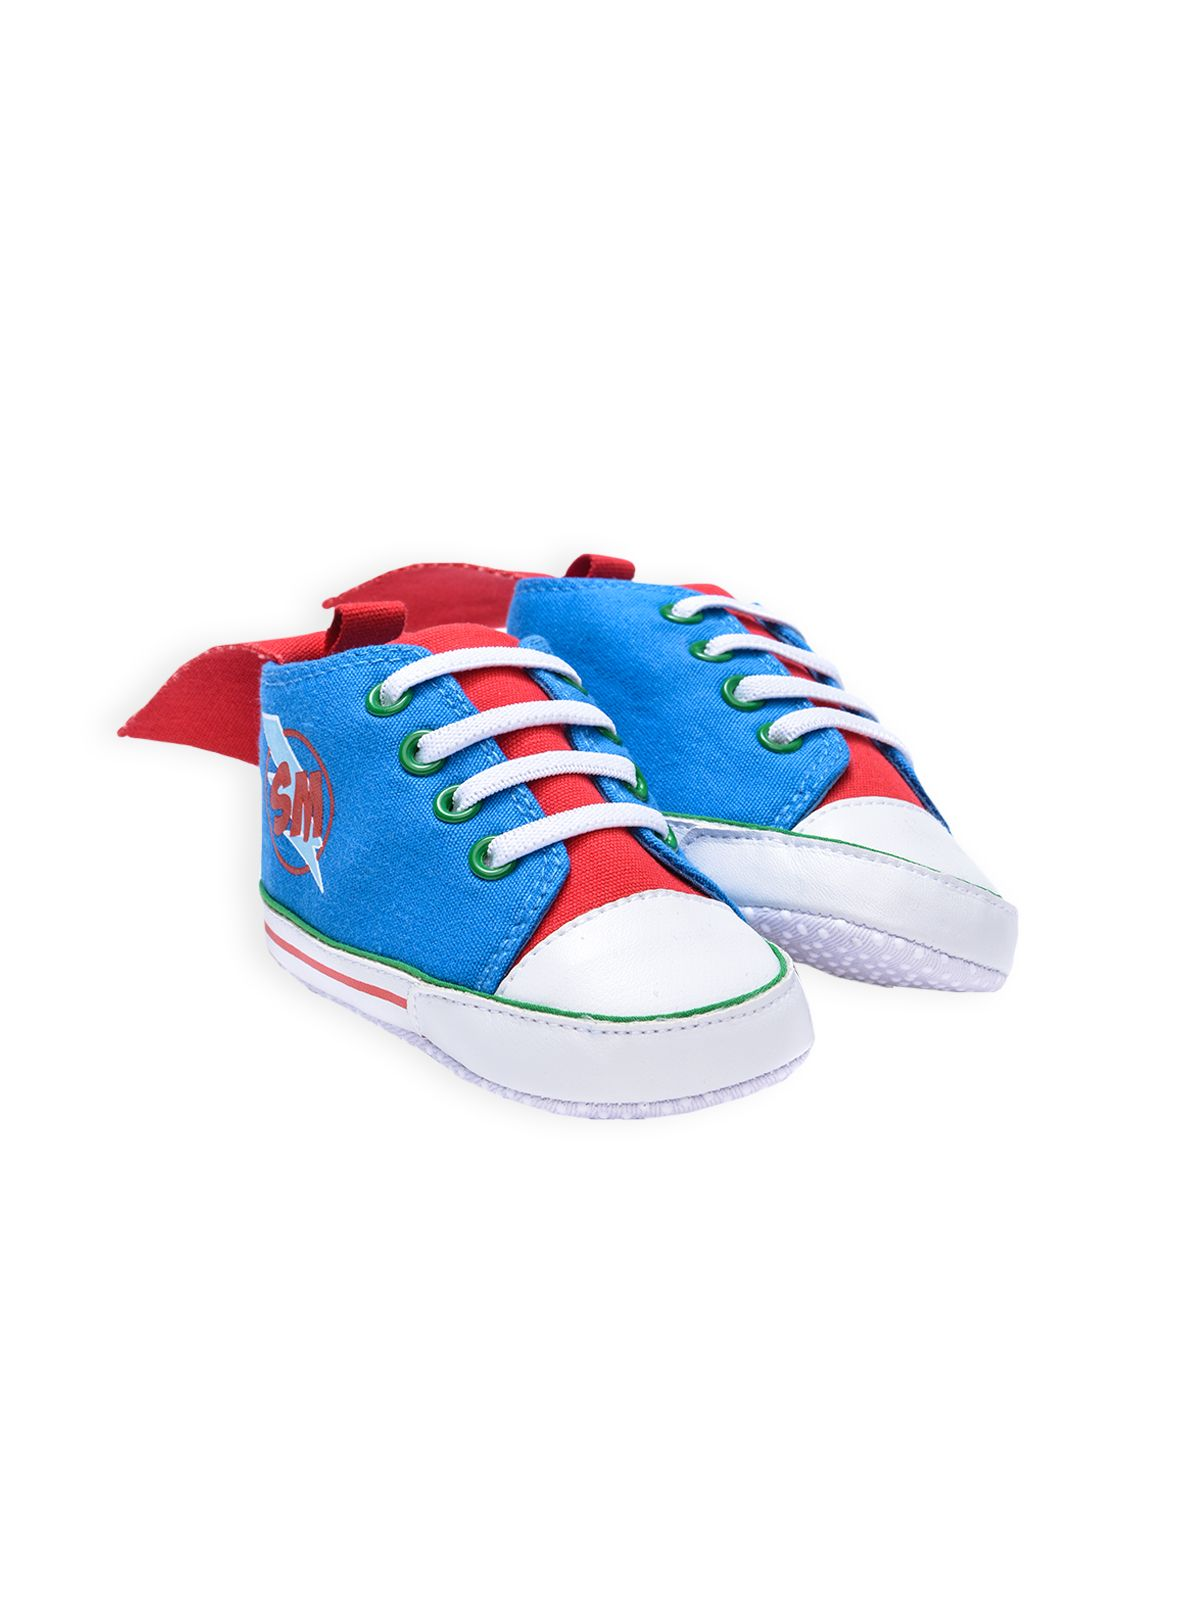 Boys baby boy hero hi top